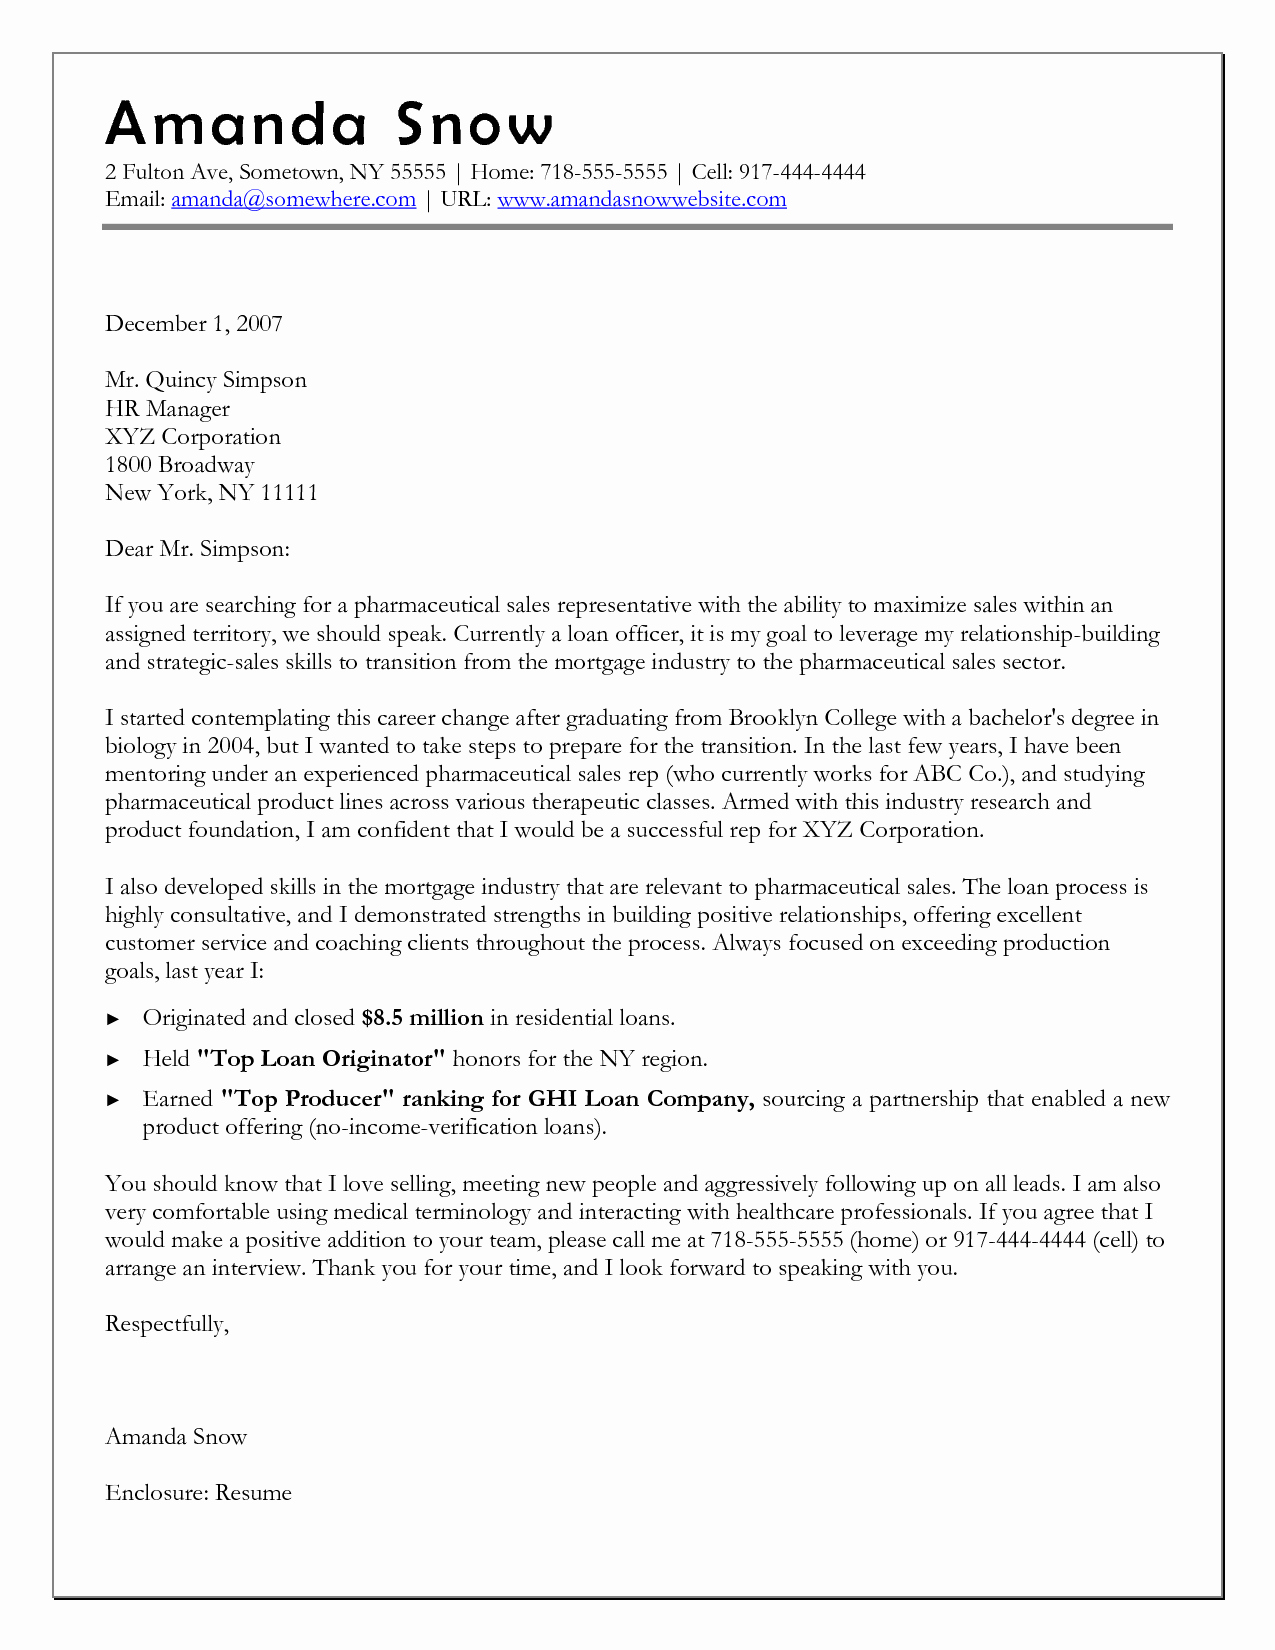 Sample Career Change Cover Letter Fresh Cover Letter Template when Changing Careers